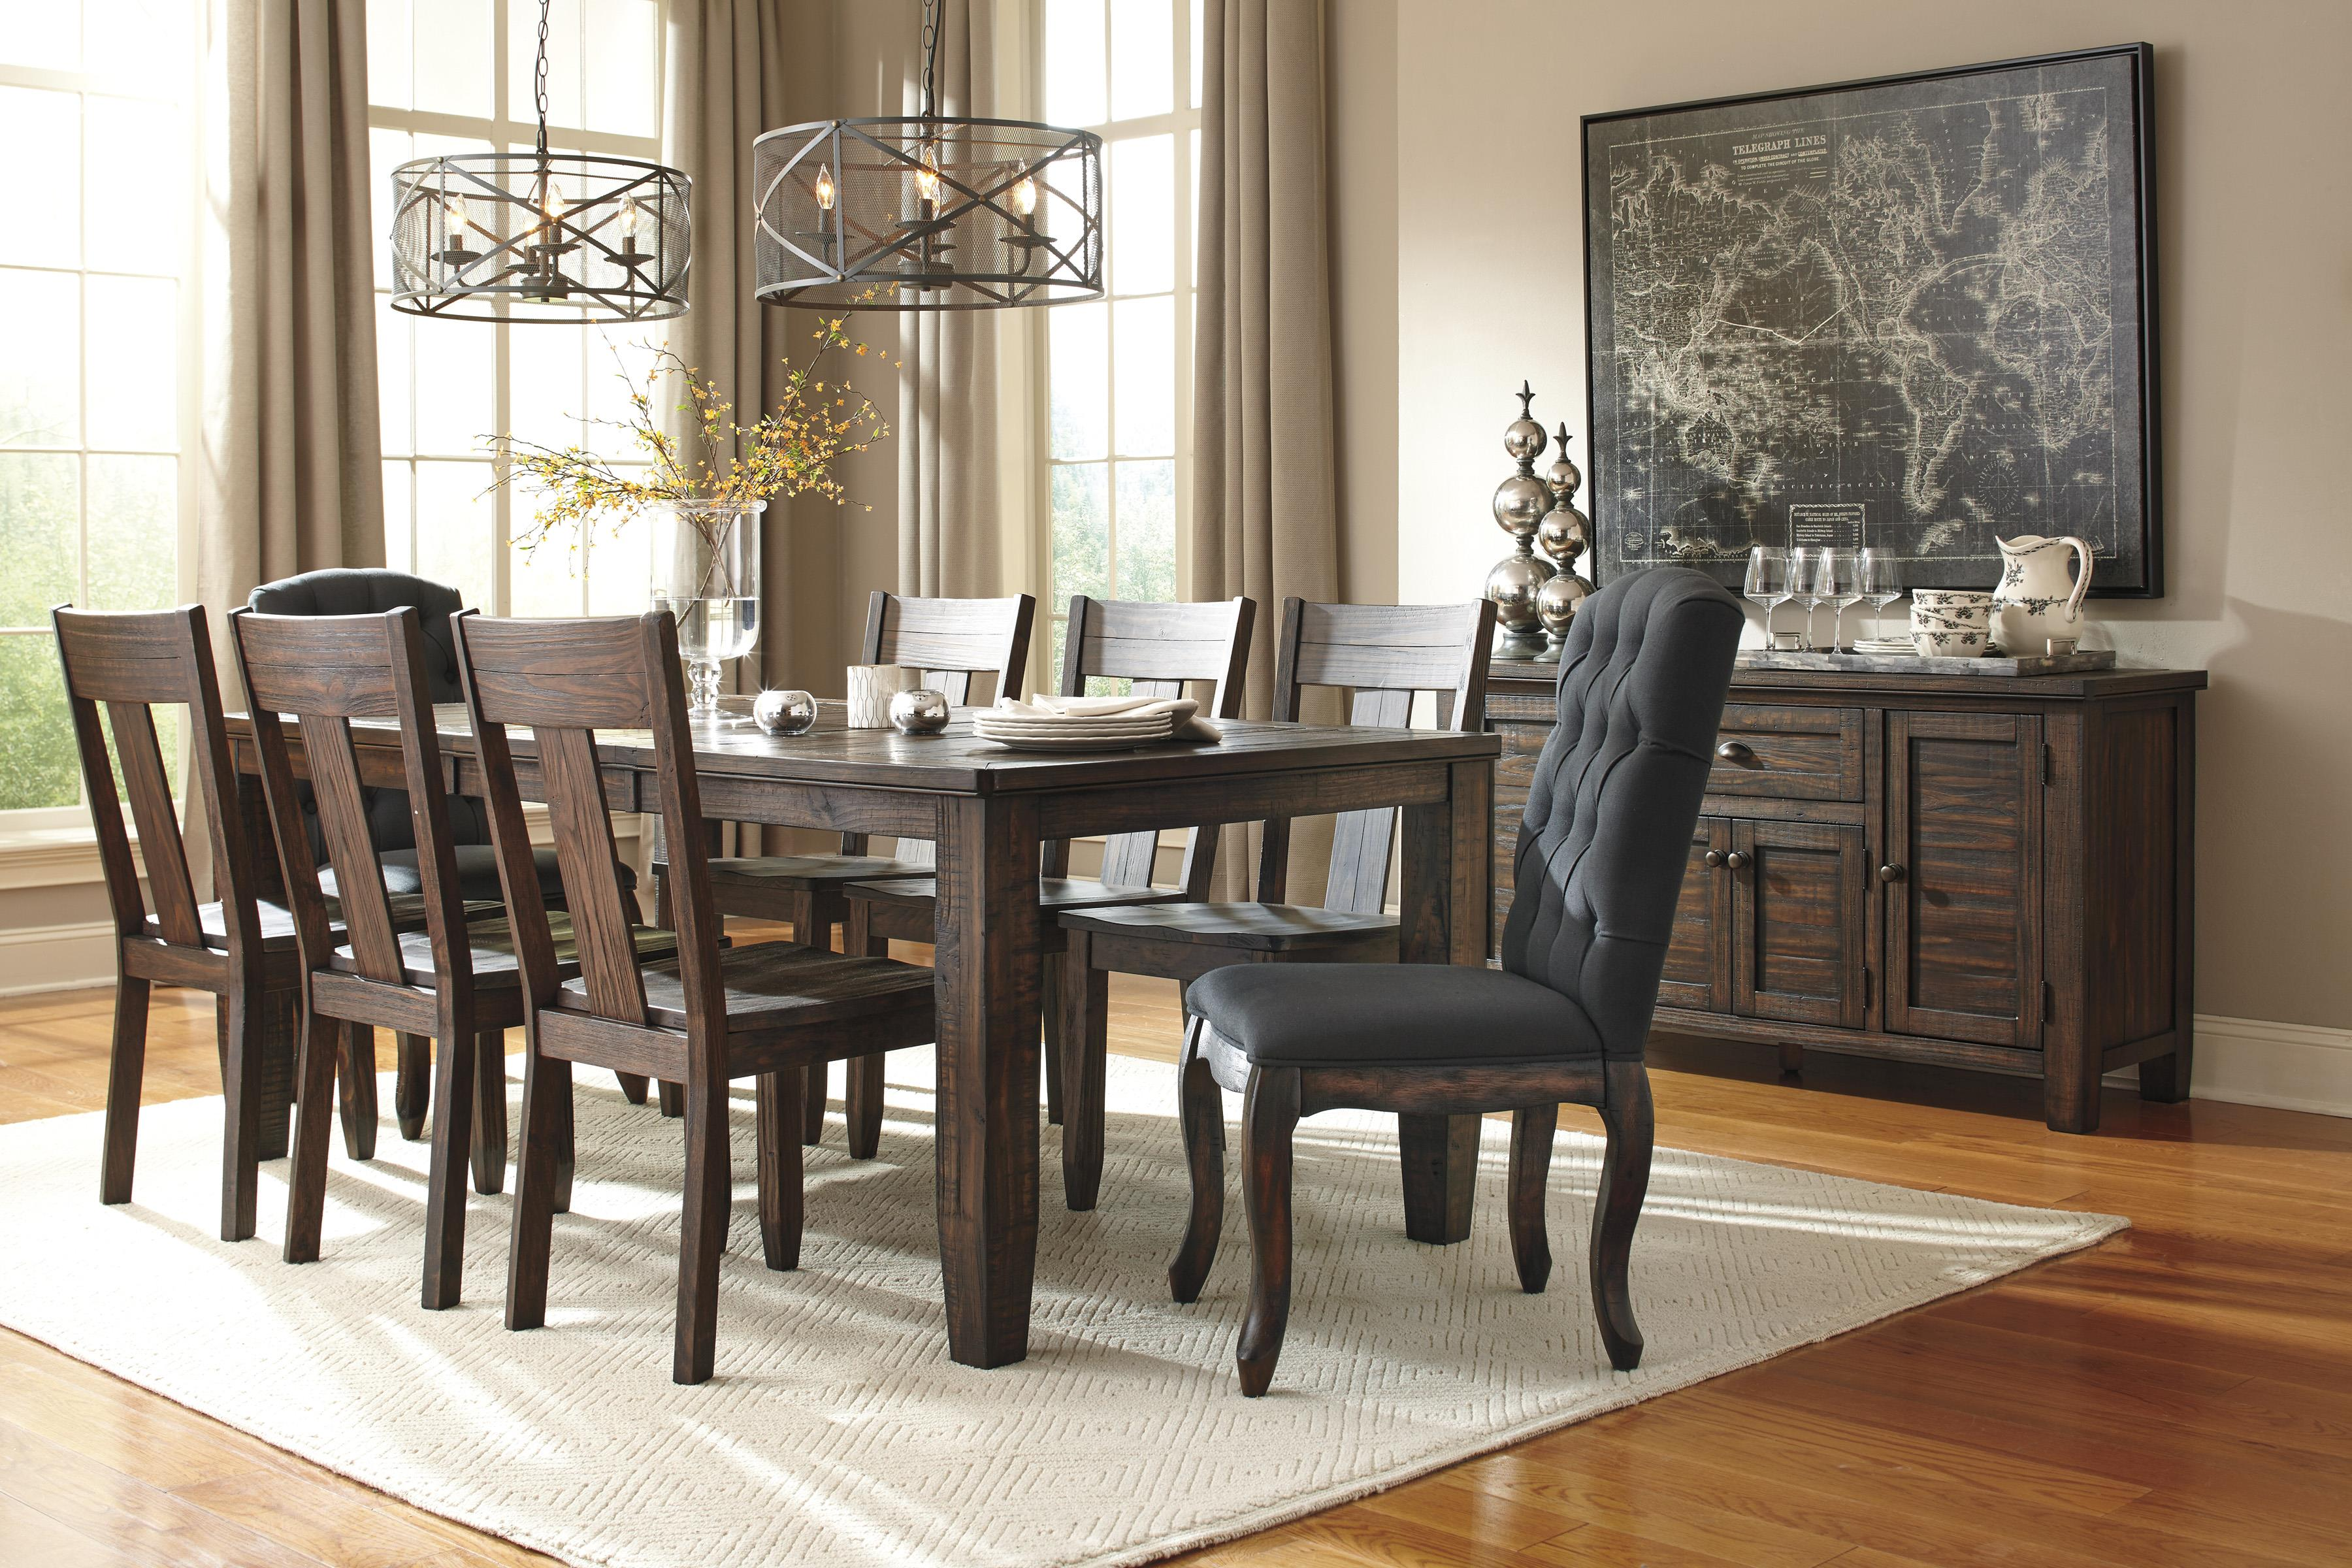 9-Piece Rectangular Dining Table Set with Upholstered Chairs ...